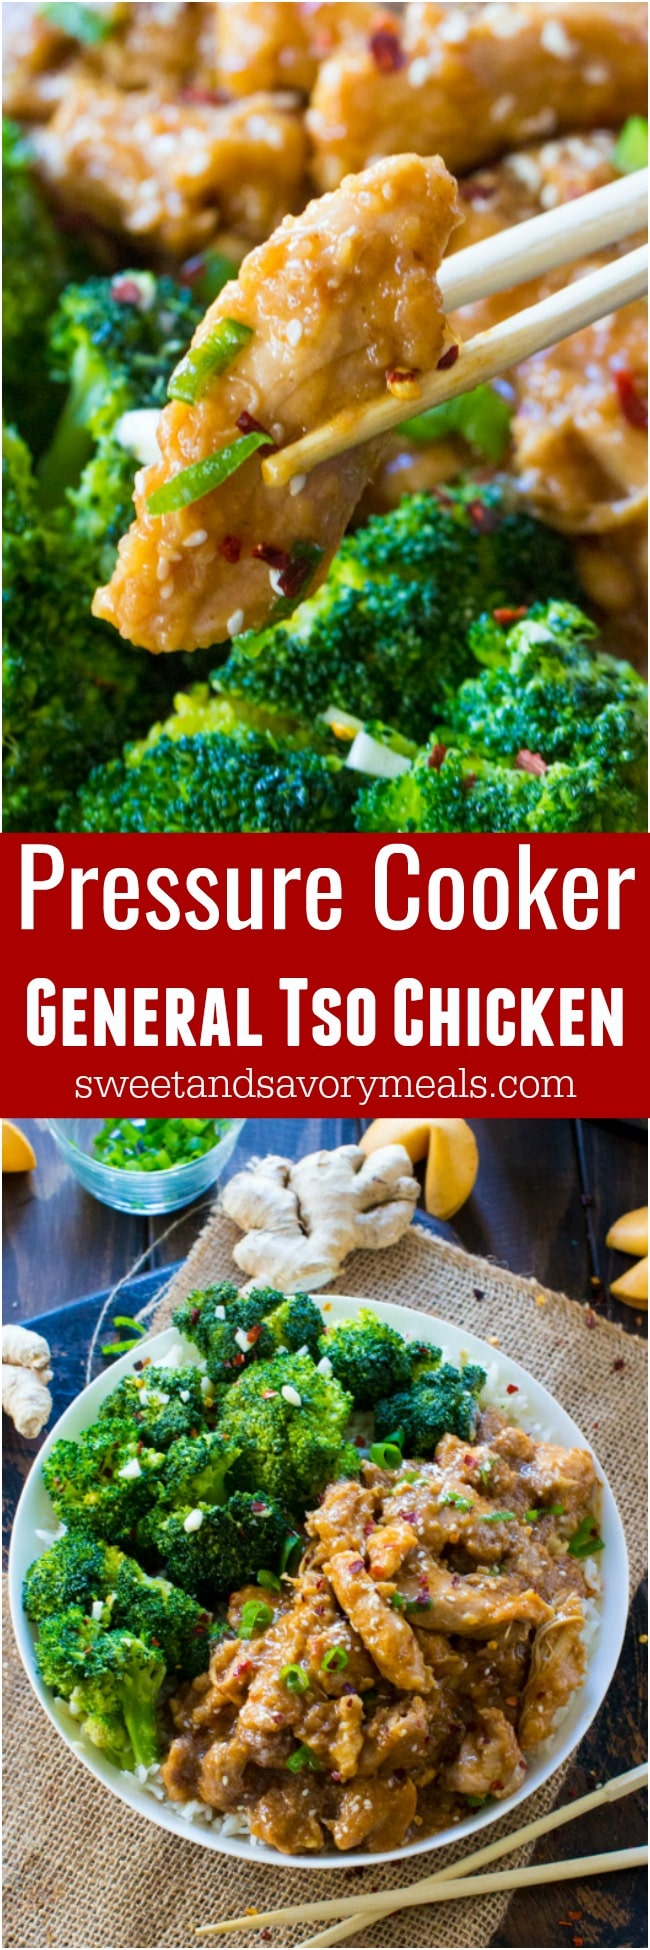 Better than takeout Instant Pot General Tso Chicken is a flavorful, restaurant quality meal made simple and easy in your pressure cooker in just 30 minutes!